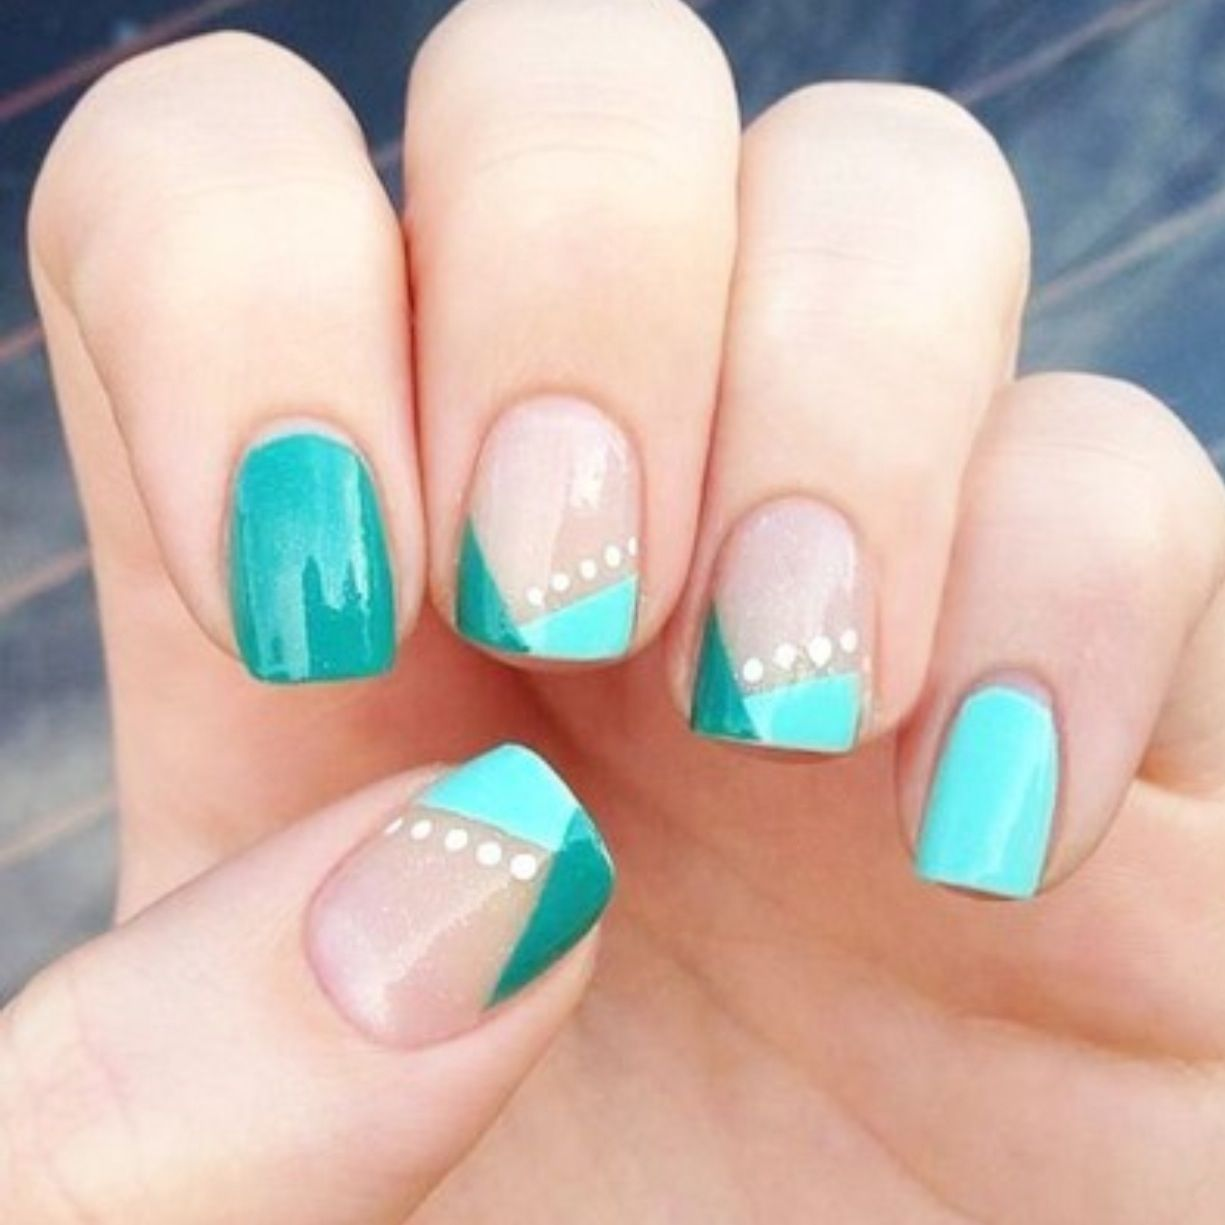 Qt nails(: | Nailed it | Pinterest | Make up, Beauty nails and Manicure